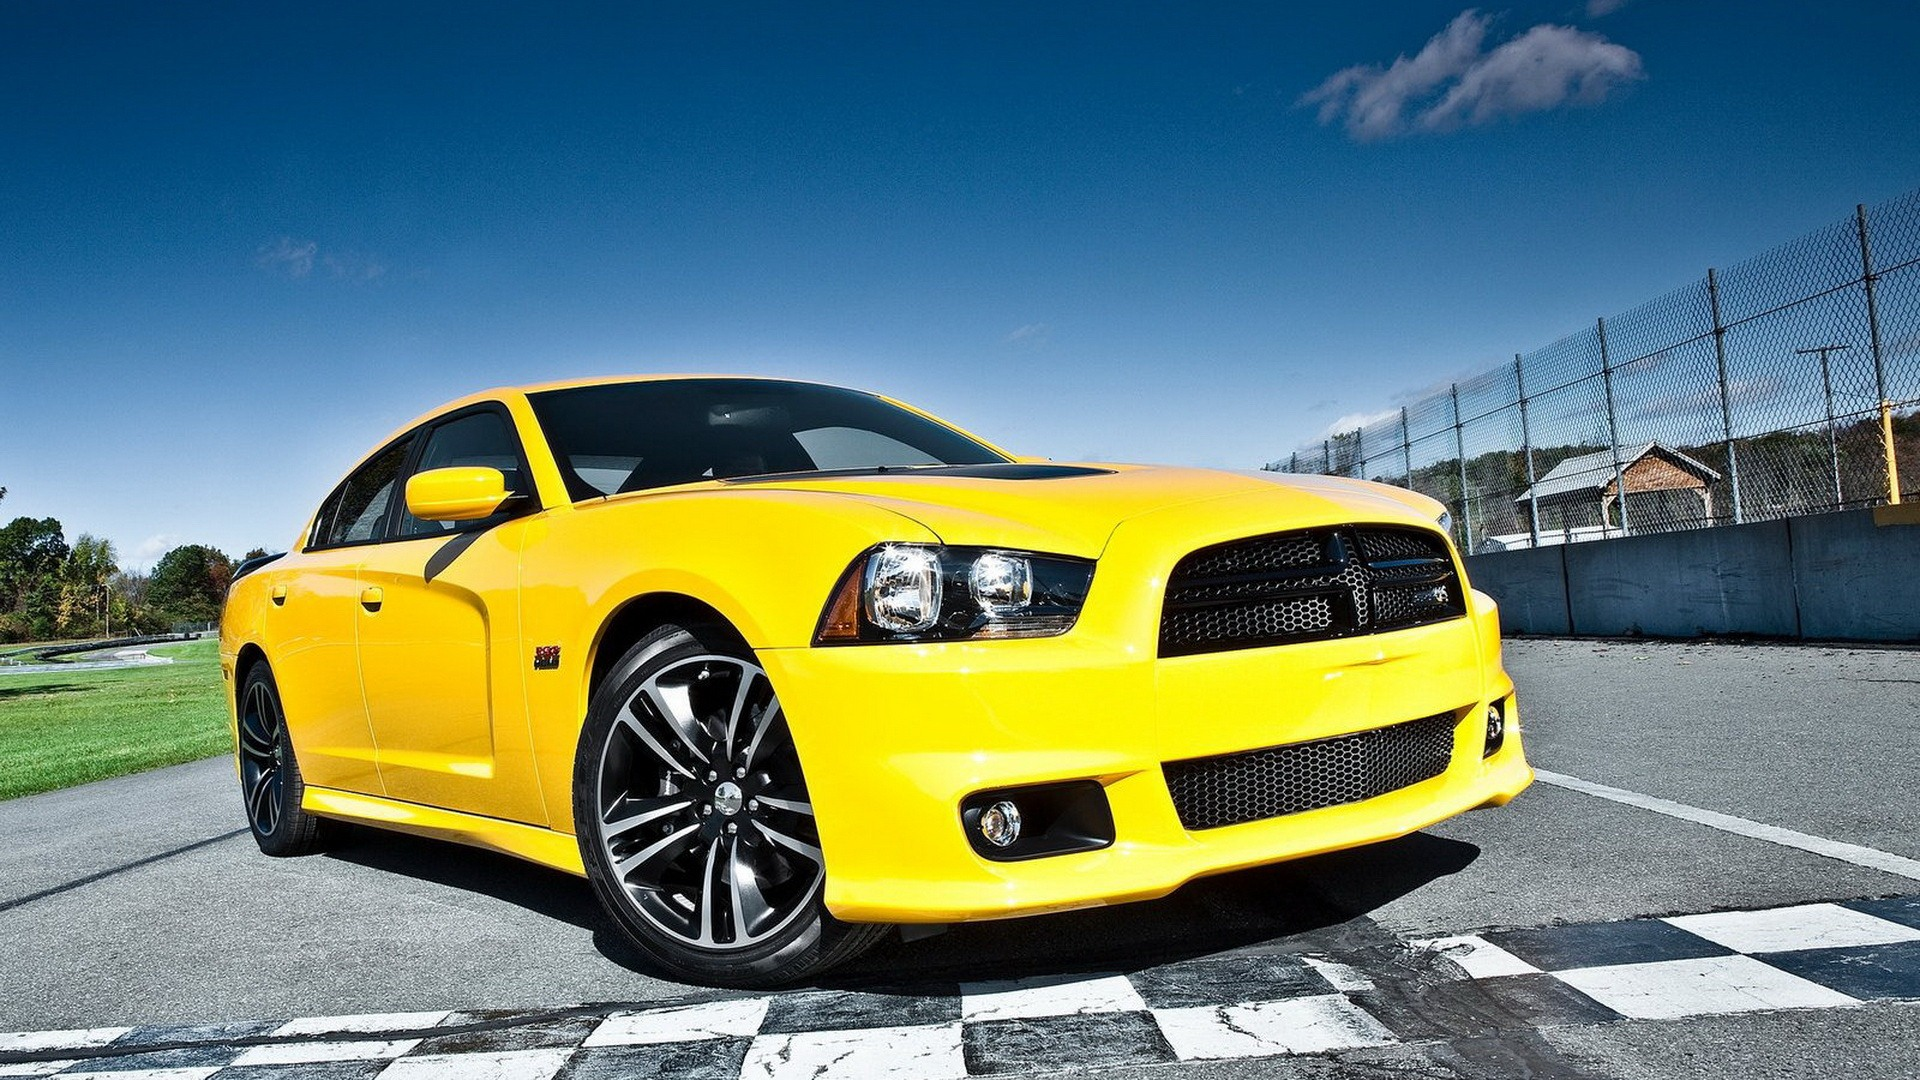 Dodge Charger Sports Car Hd Wallpapers 1 1920x1080